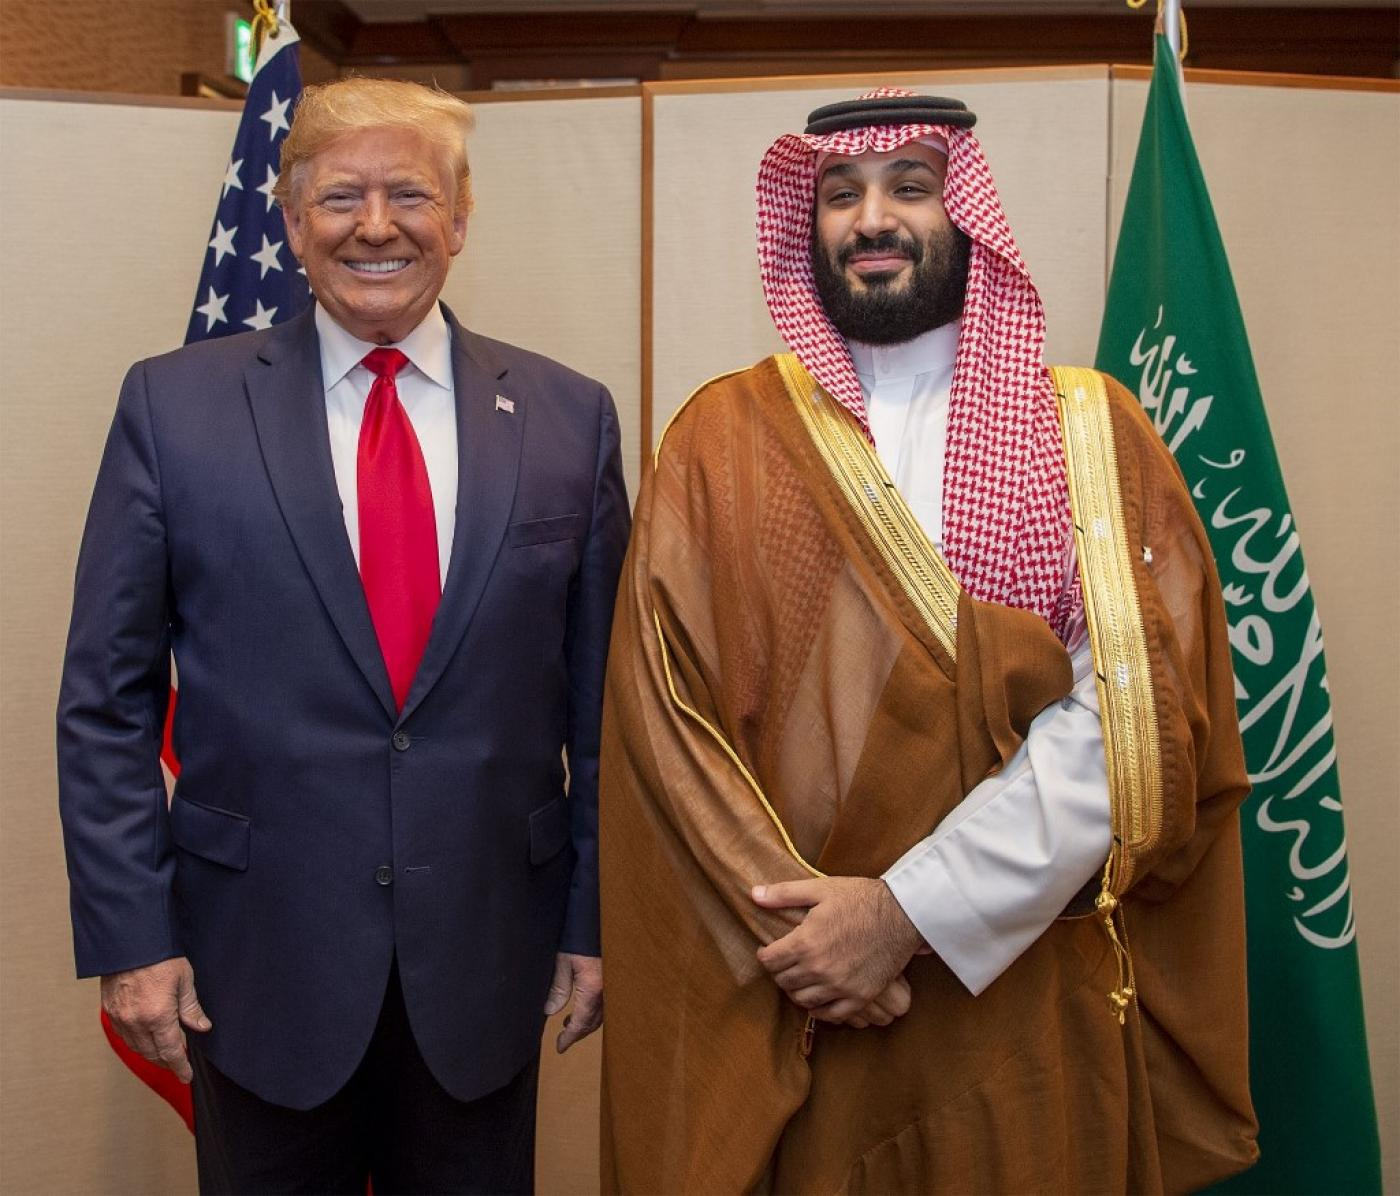 Saudi Crown Prince Mohammed bin Salman and US President Donald Trump during their meeting on the sidelines of the G20 summit in Osaka, Japan (AFP)